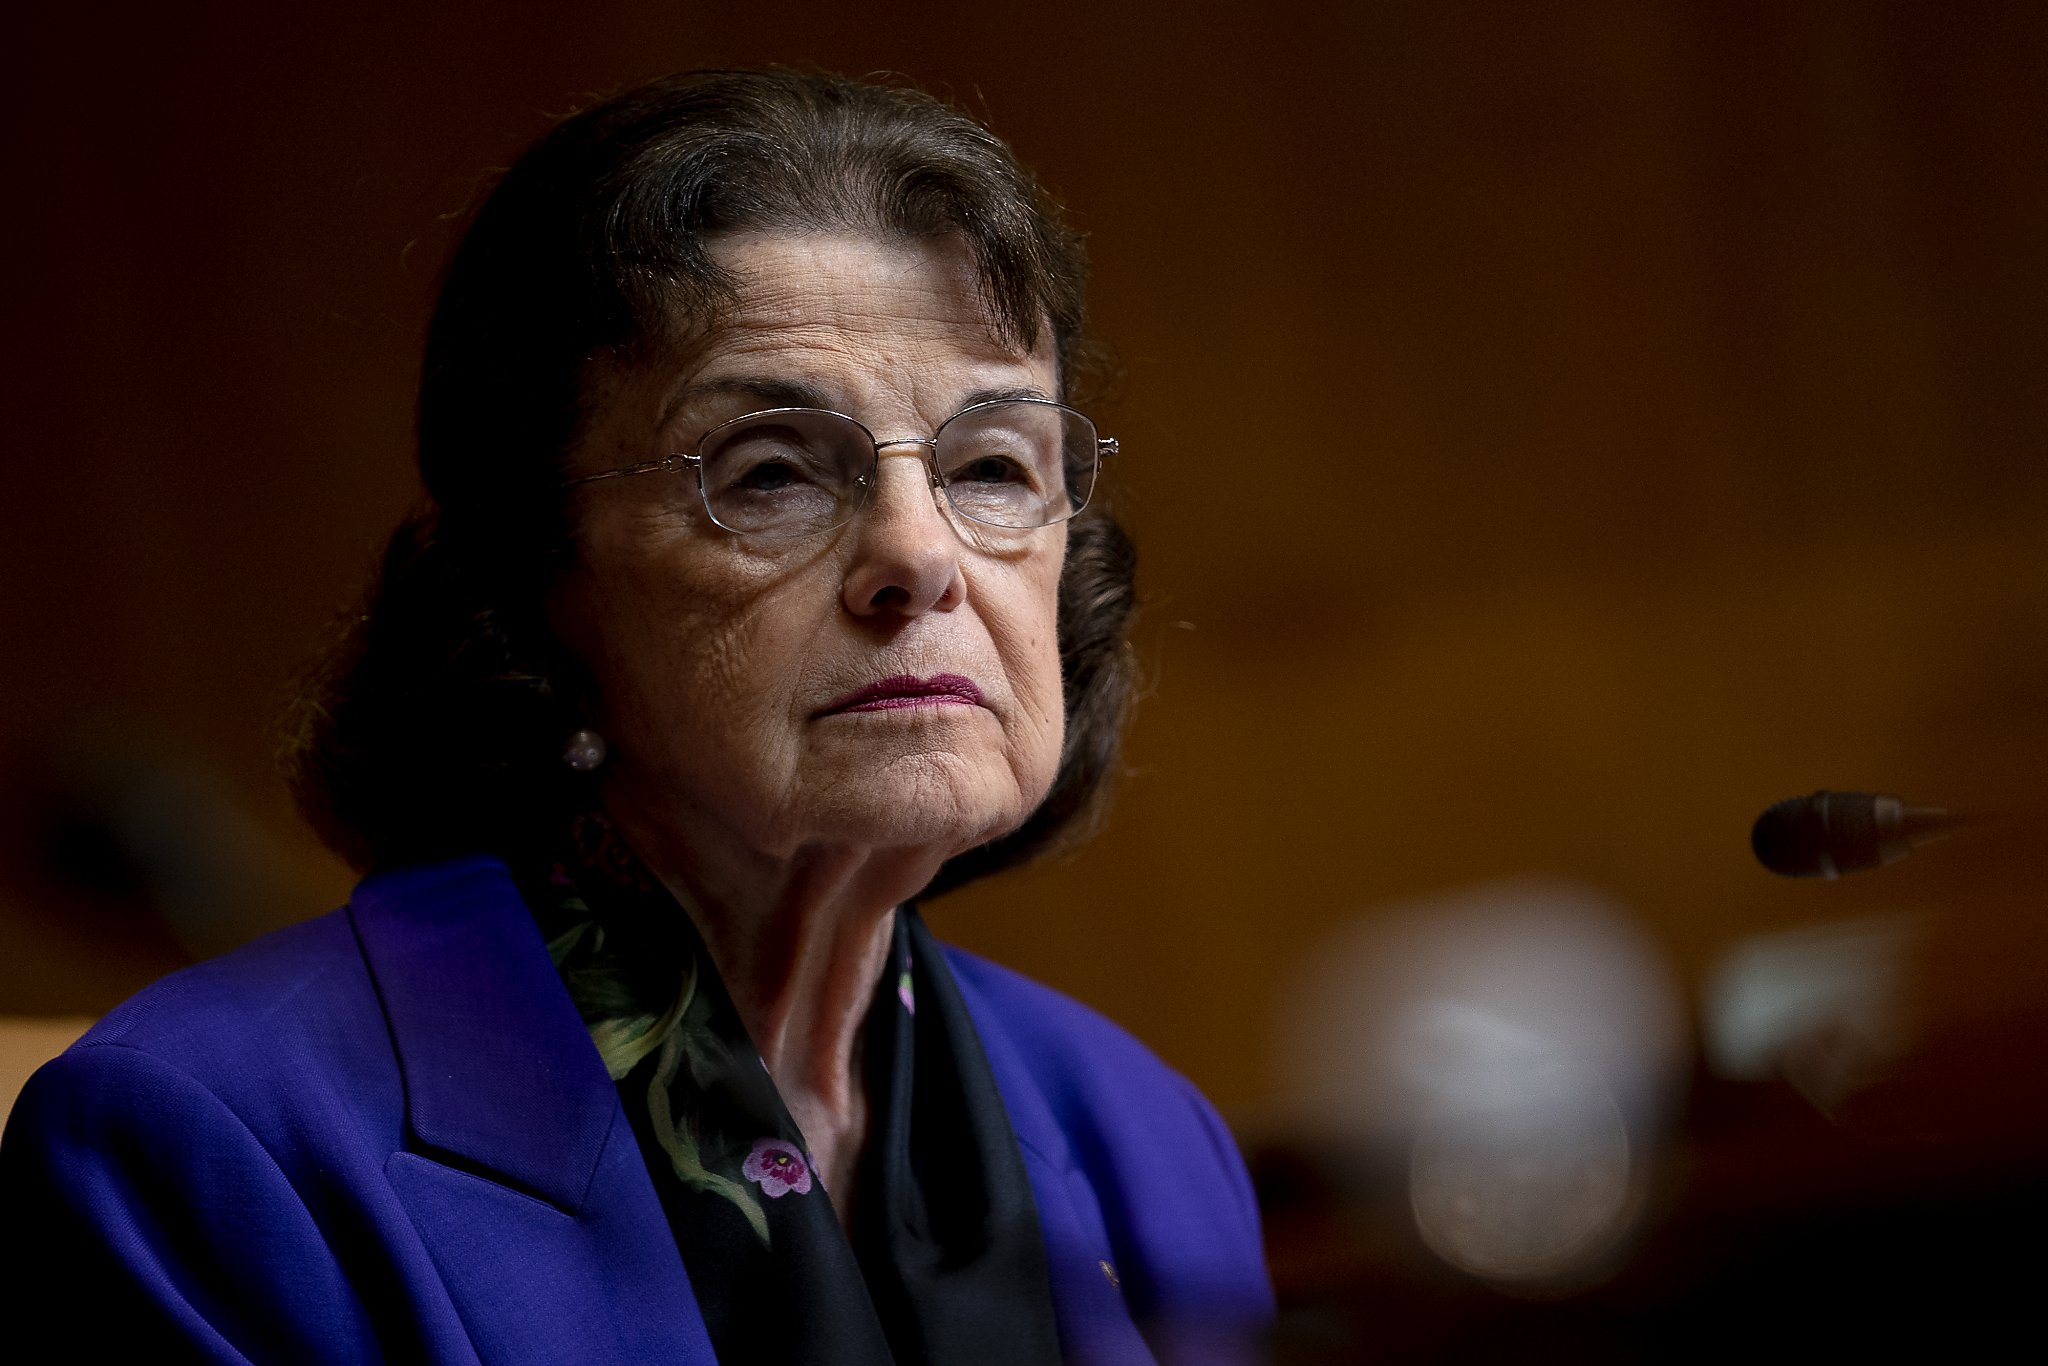 Something strange is going on in Feinstein's voting rights stance